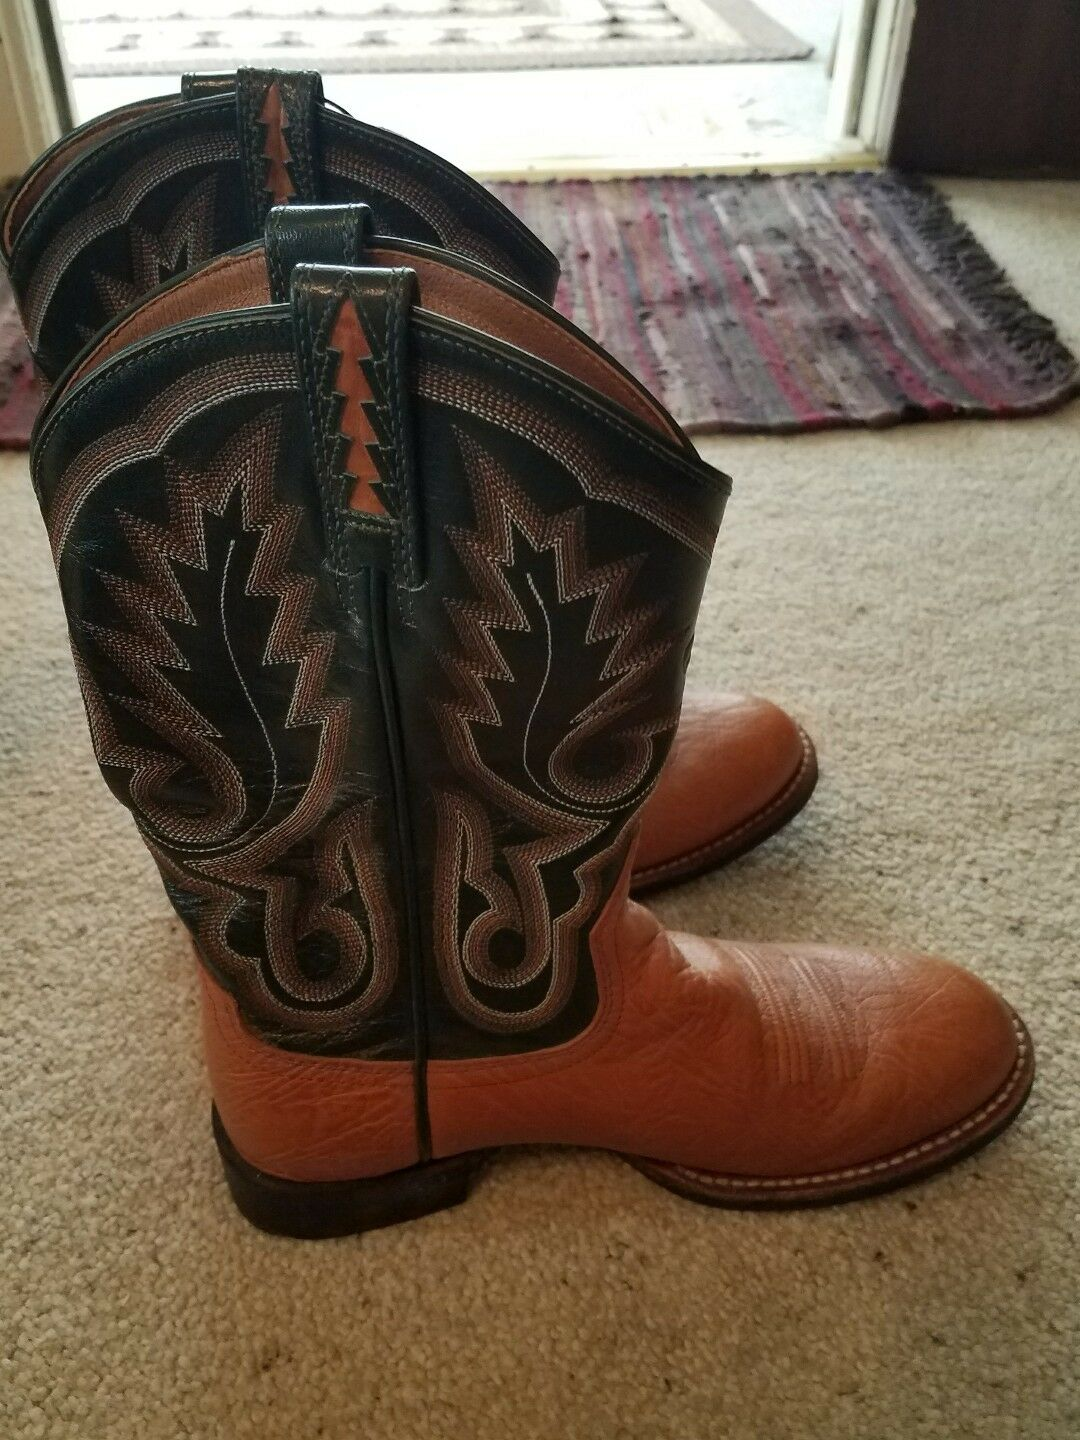 Ariat 17430 Cowgirl rodeo boots 7 B green brown excellent condition